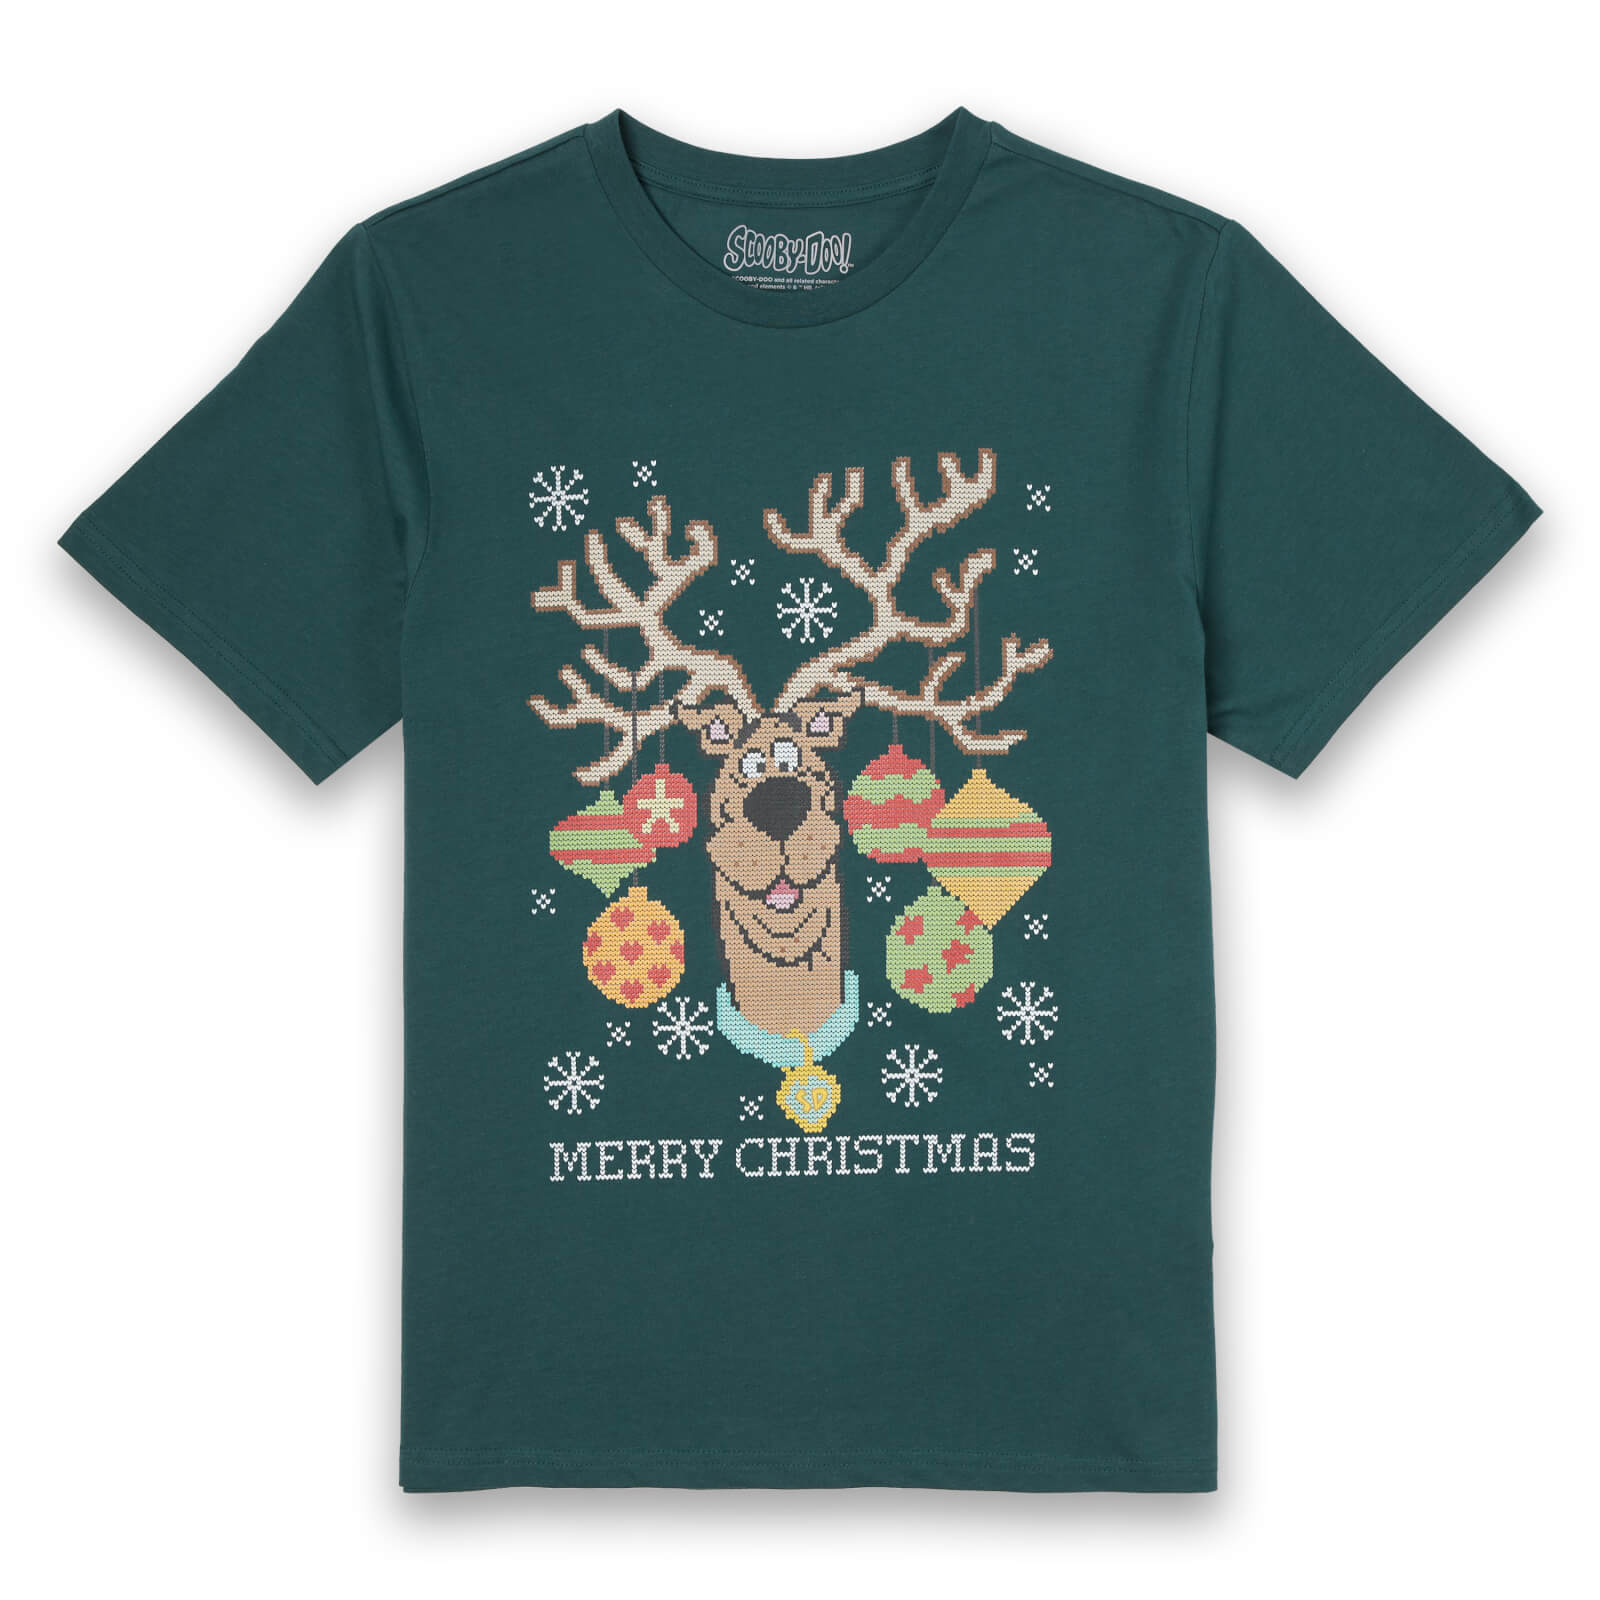 Scooby Doo Men's Christmas T-Shirt - Forest Green - M - Forest Green de Scooby Doo